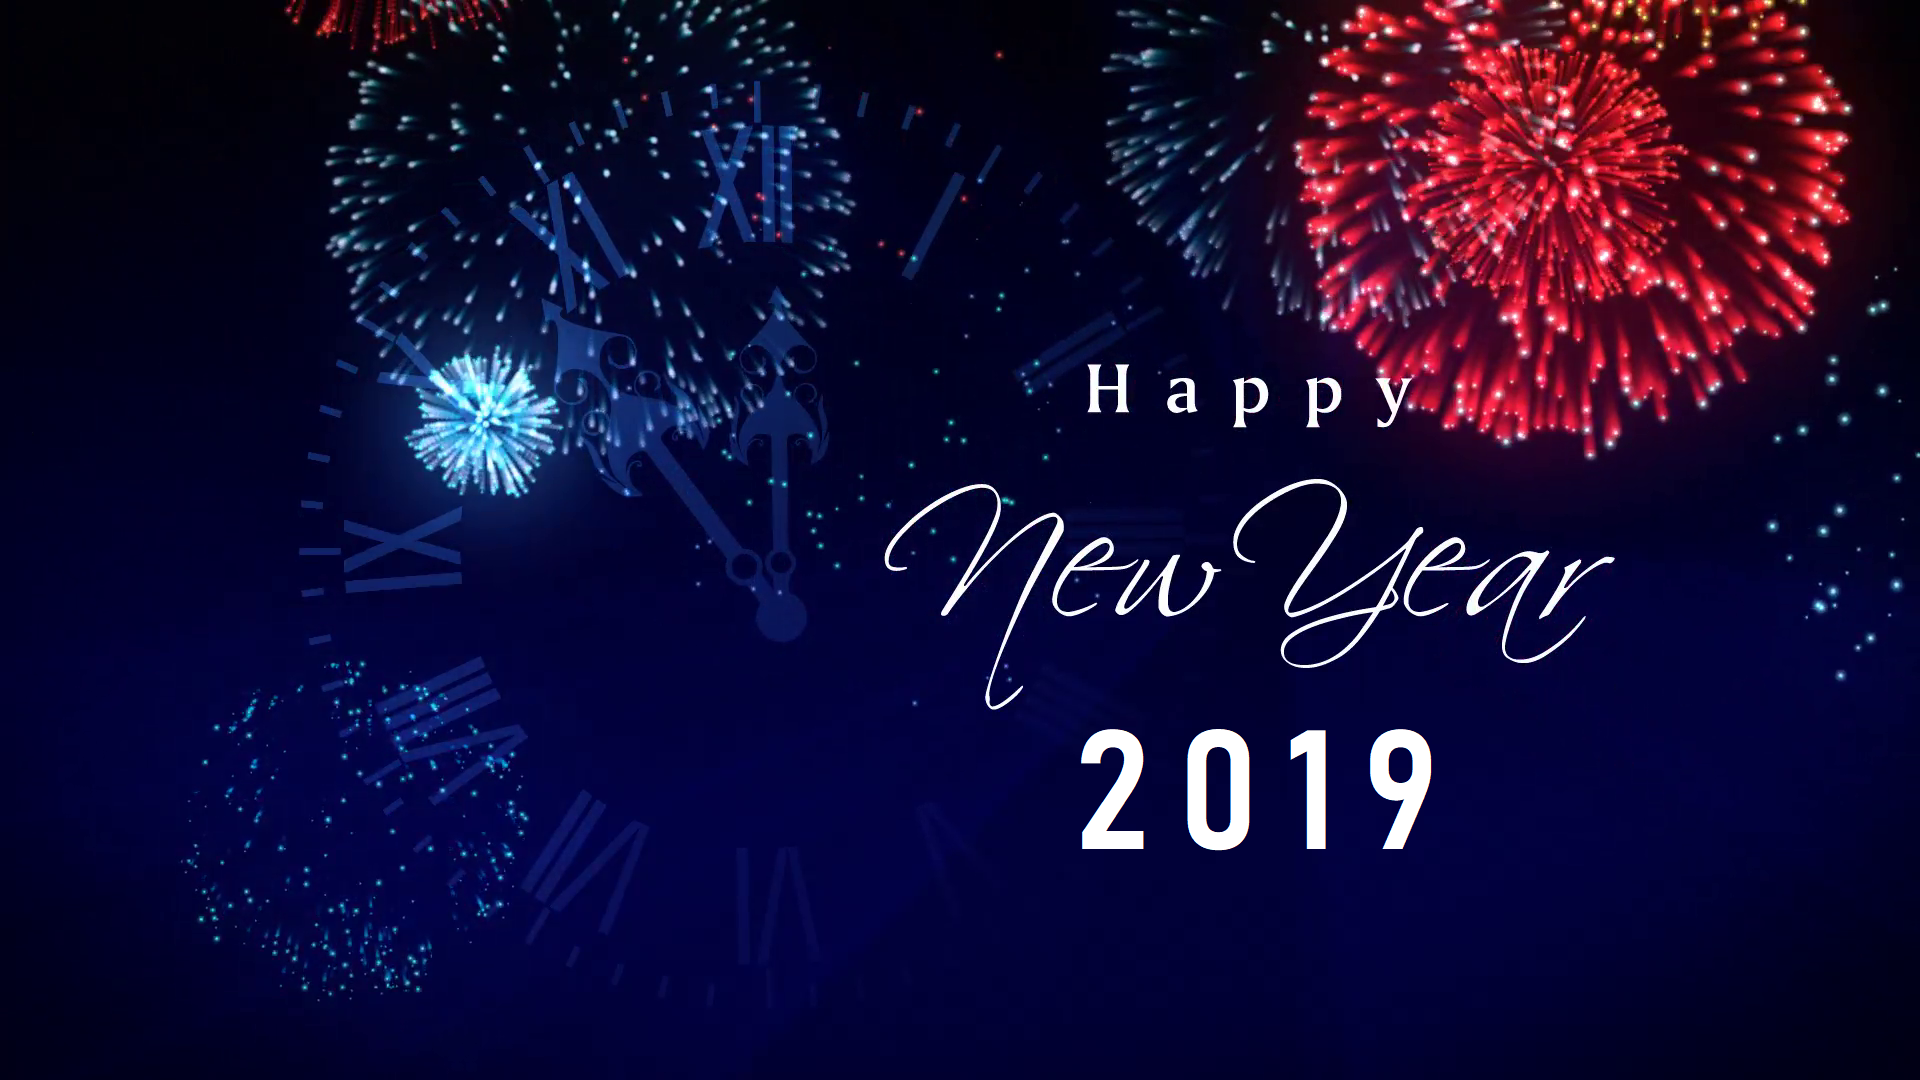 292 New Year 2019 Hd Wallpapers Background Images Wallpaper Abyss